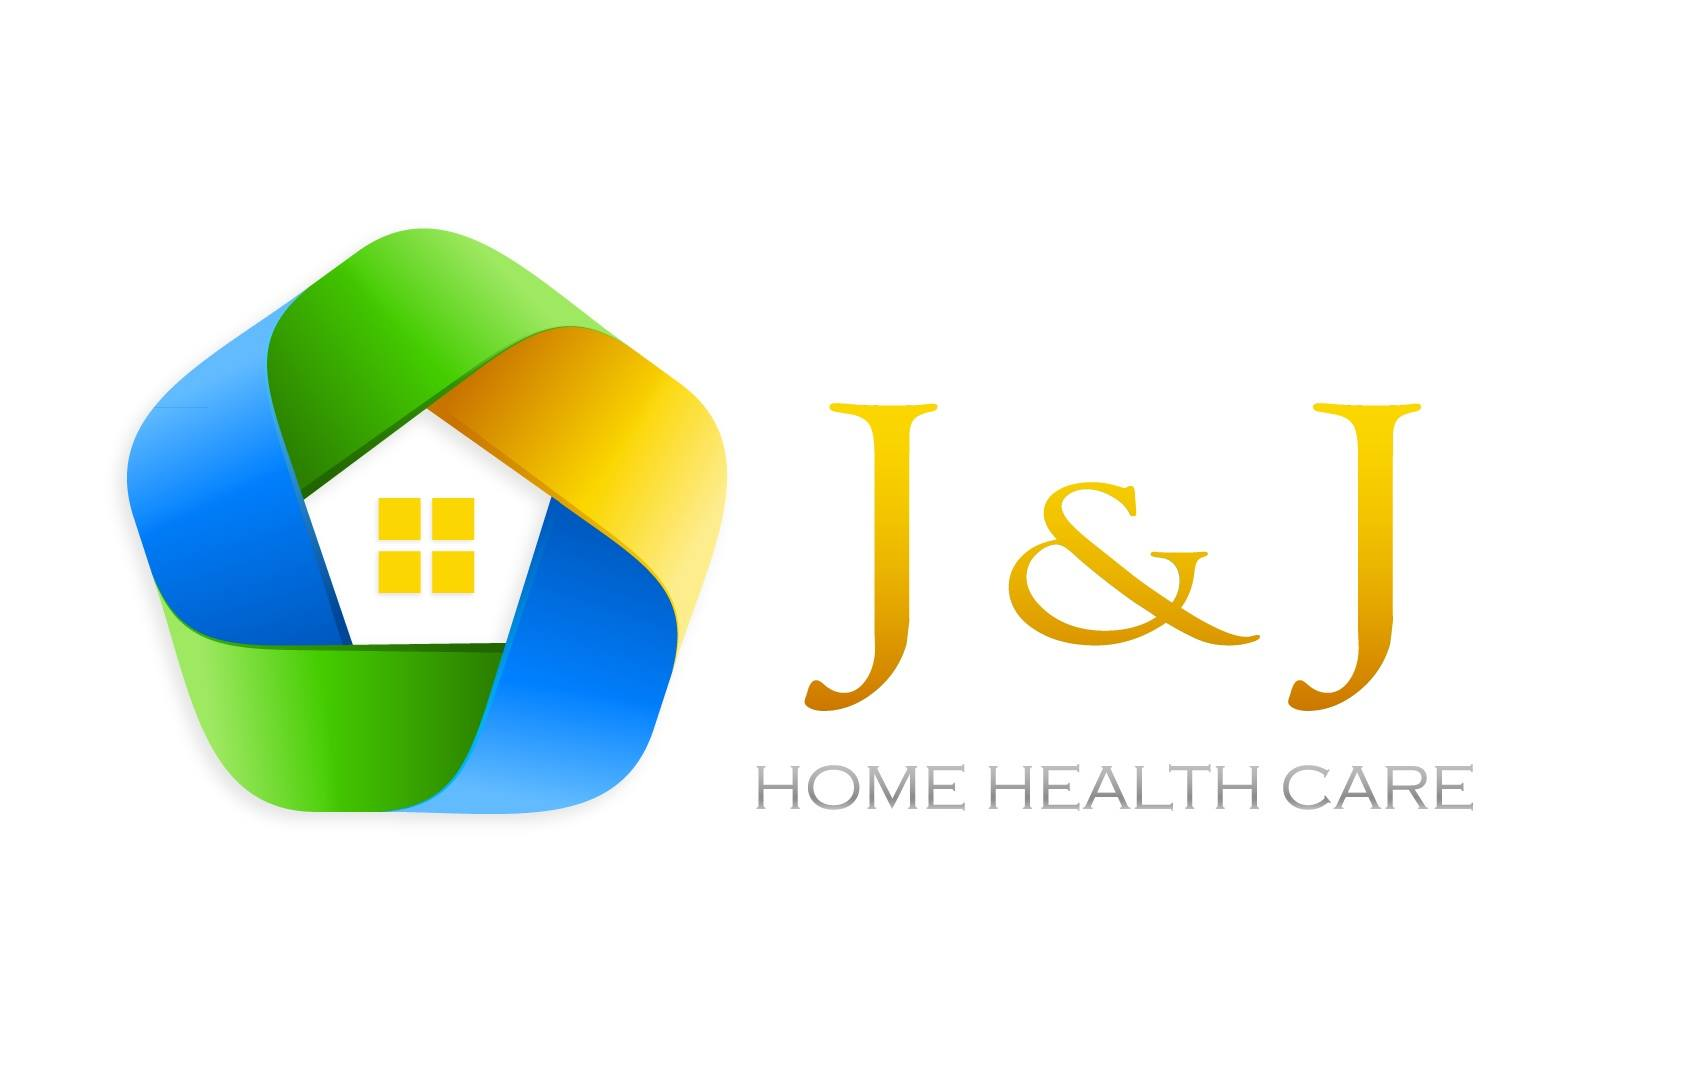 J &J Home Health Care